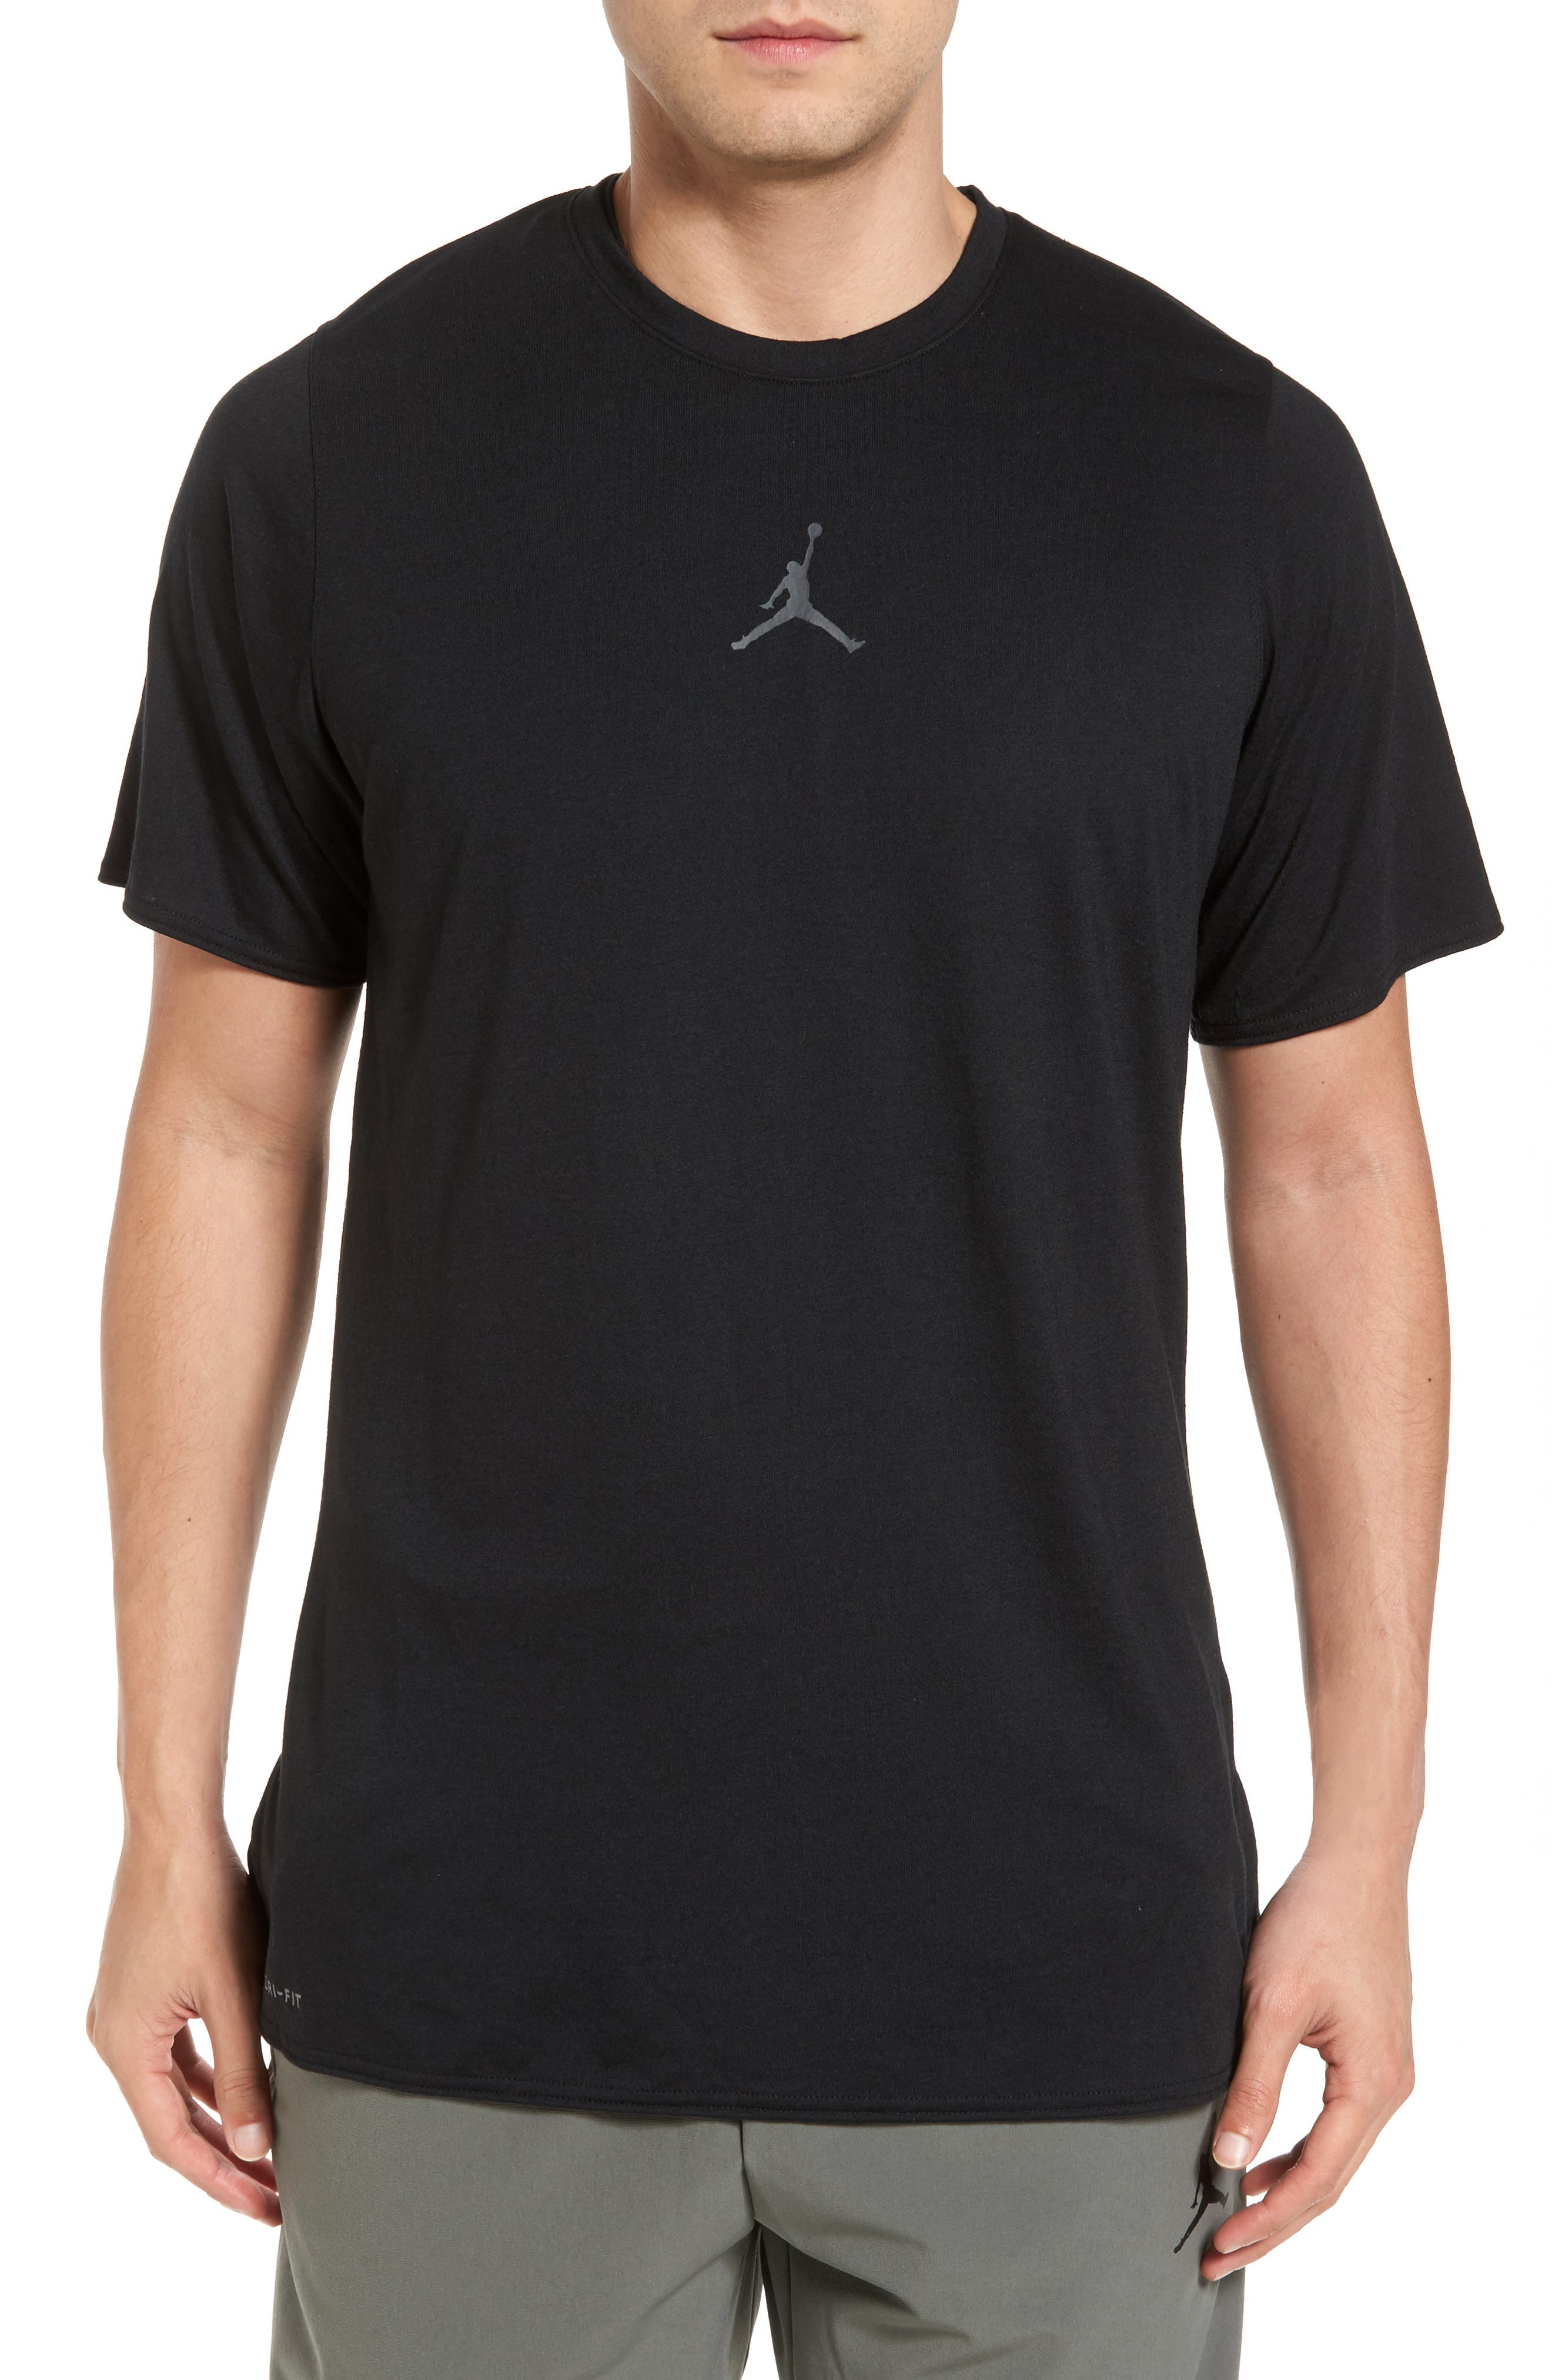 23 Alpha Dry T-Shirt,                         Main,                         color, Black/ Anthracite